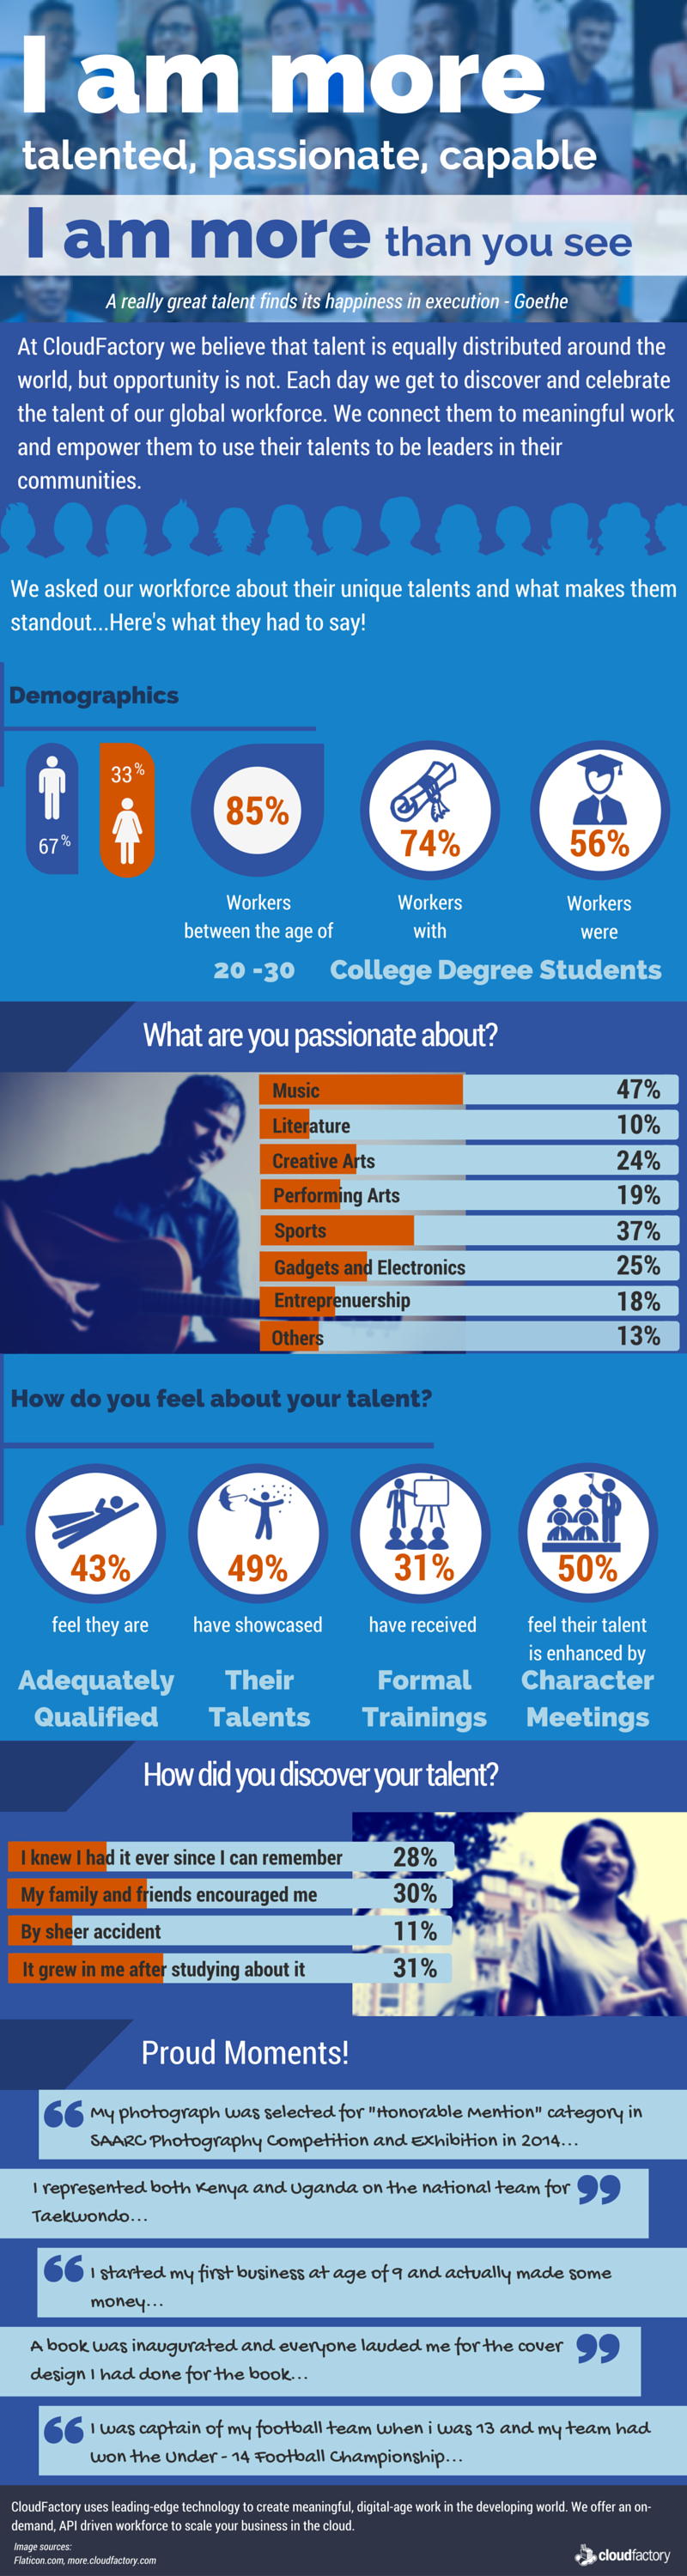 I am more Talent Survey Results